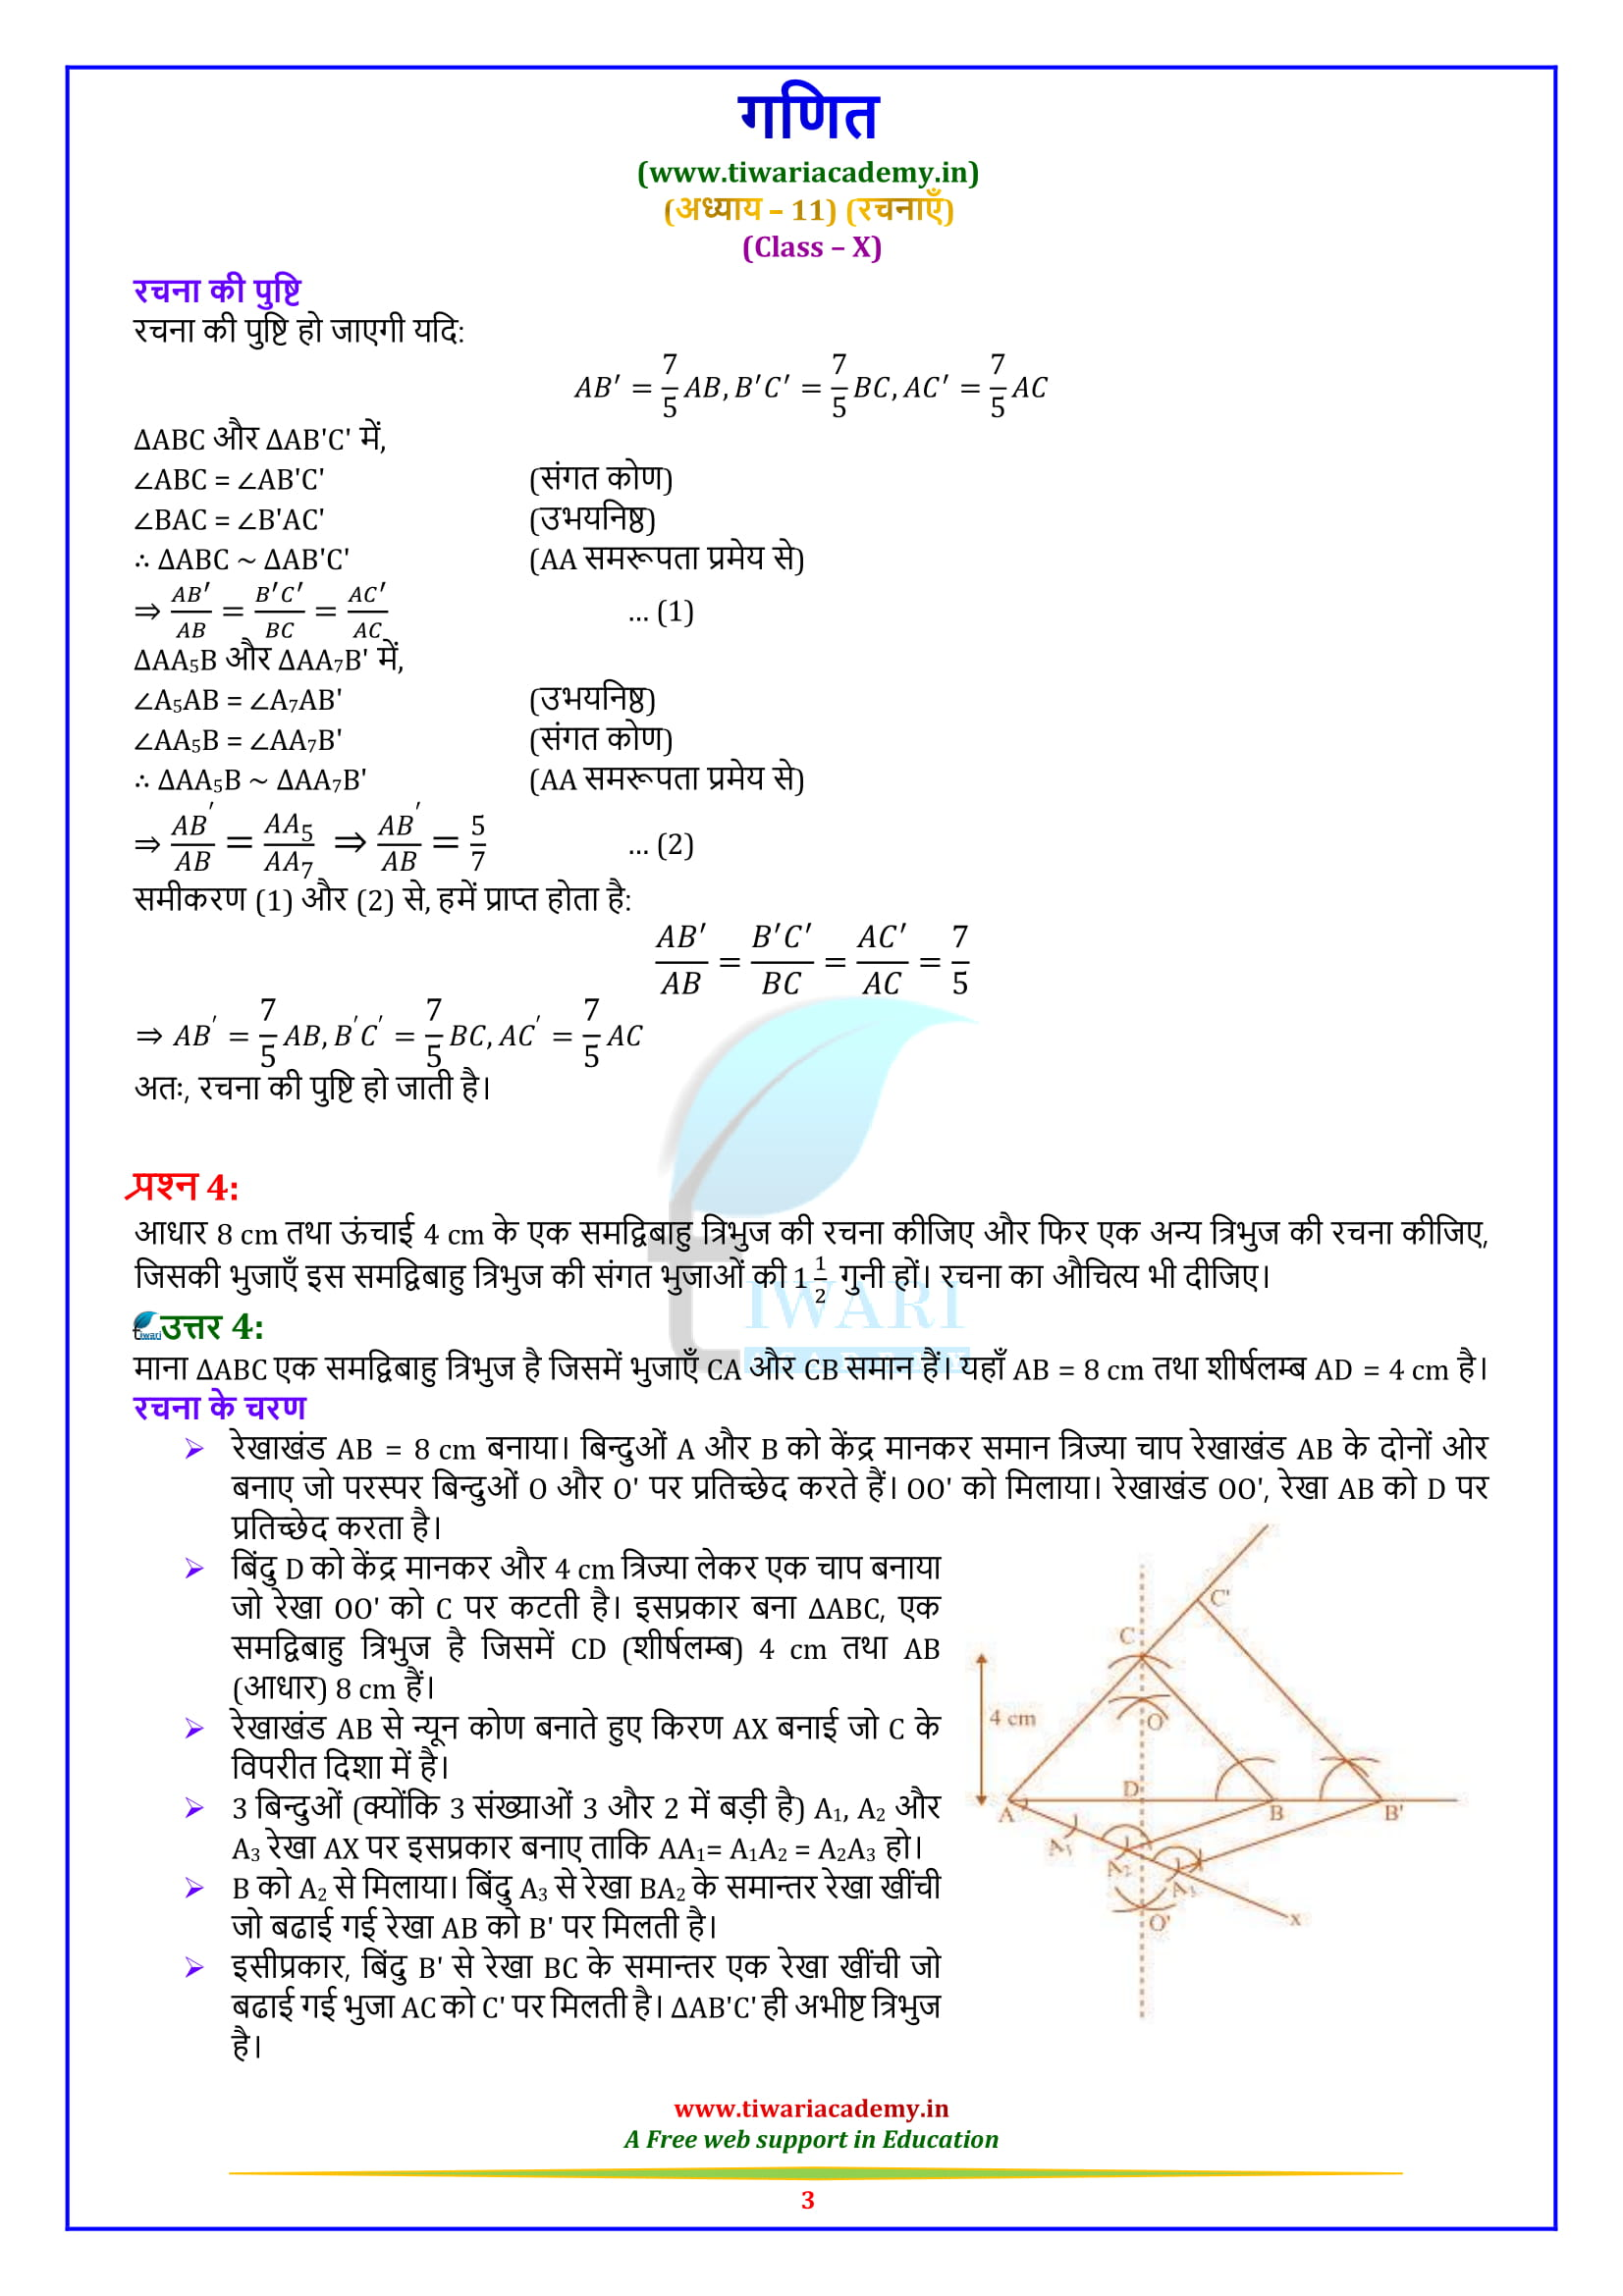 Class 10 Maths Exercise 11.1 solutions updated for high school up board